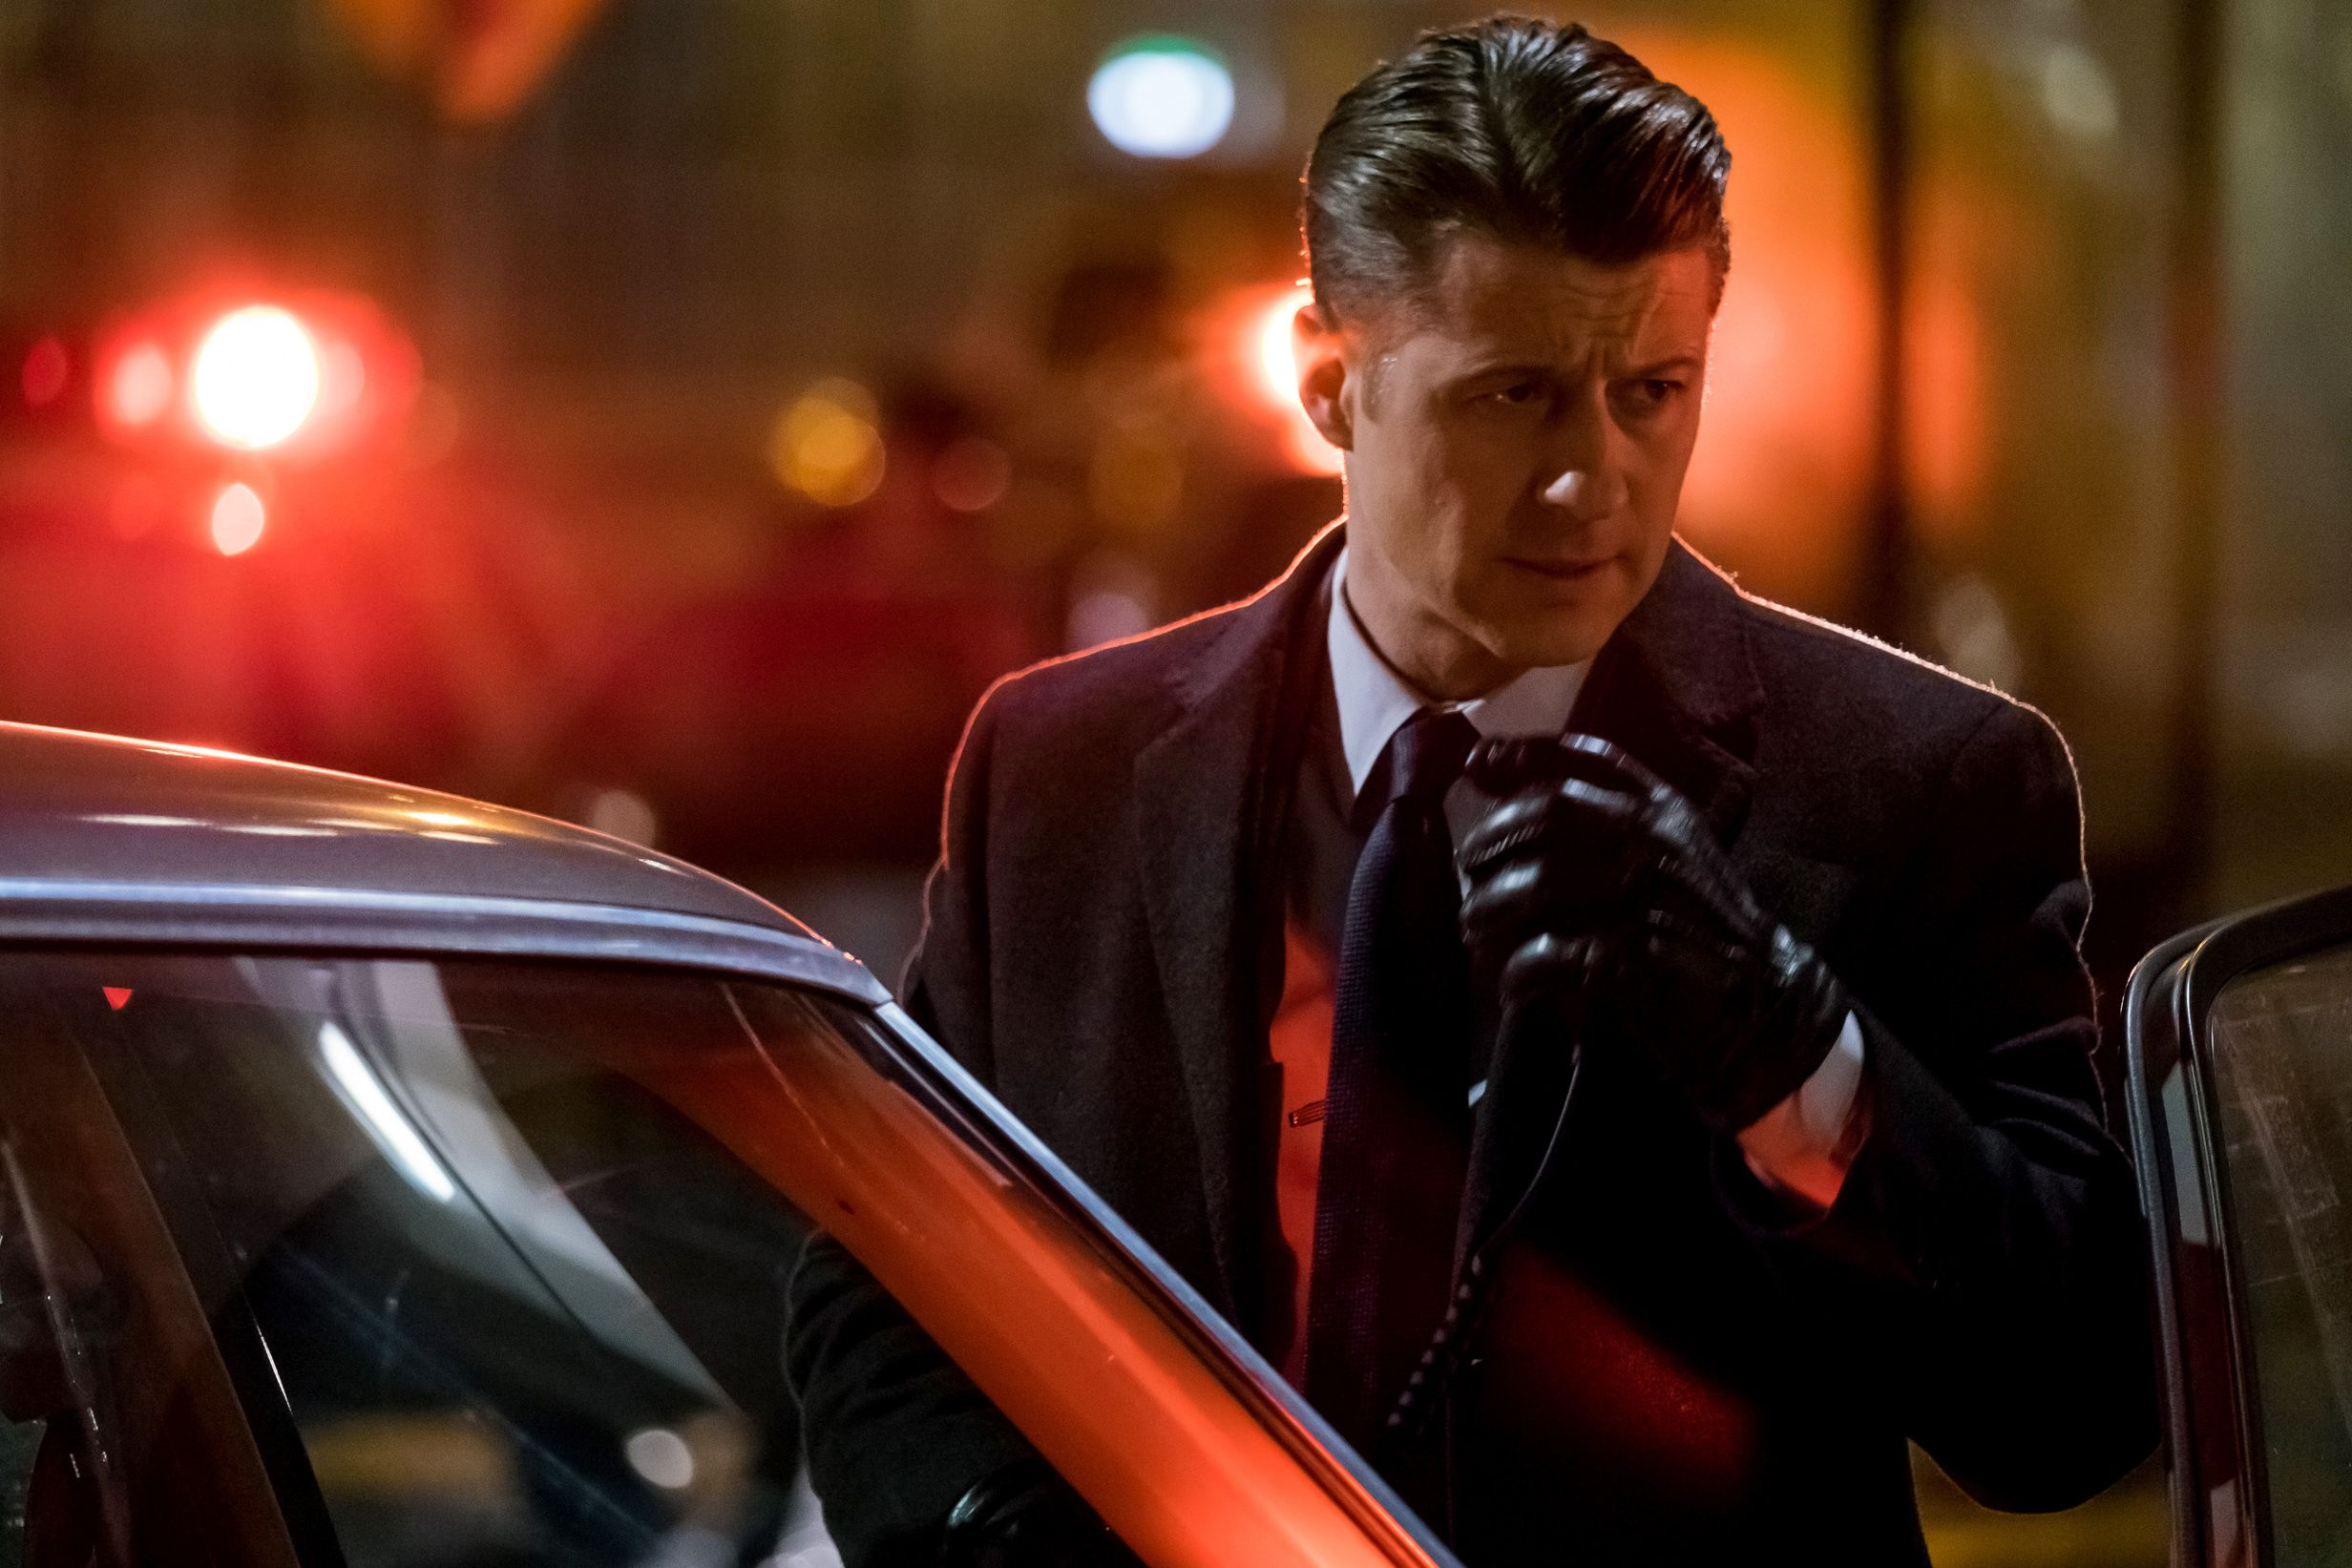 The Final 'Gotham' Season Will Focus on Bruce Wayne's Transformation Into Batman